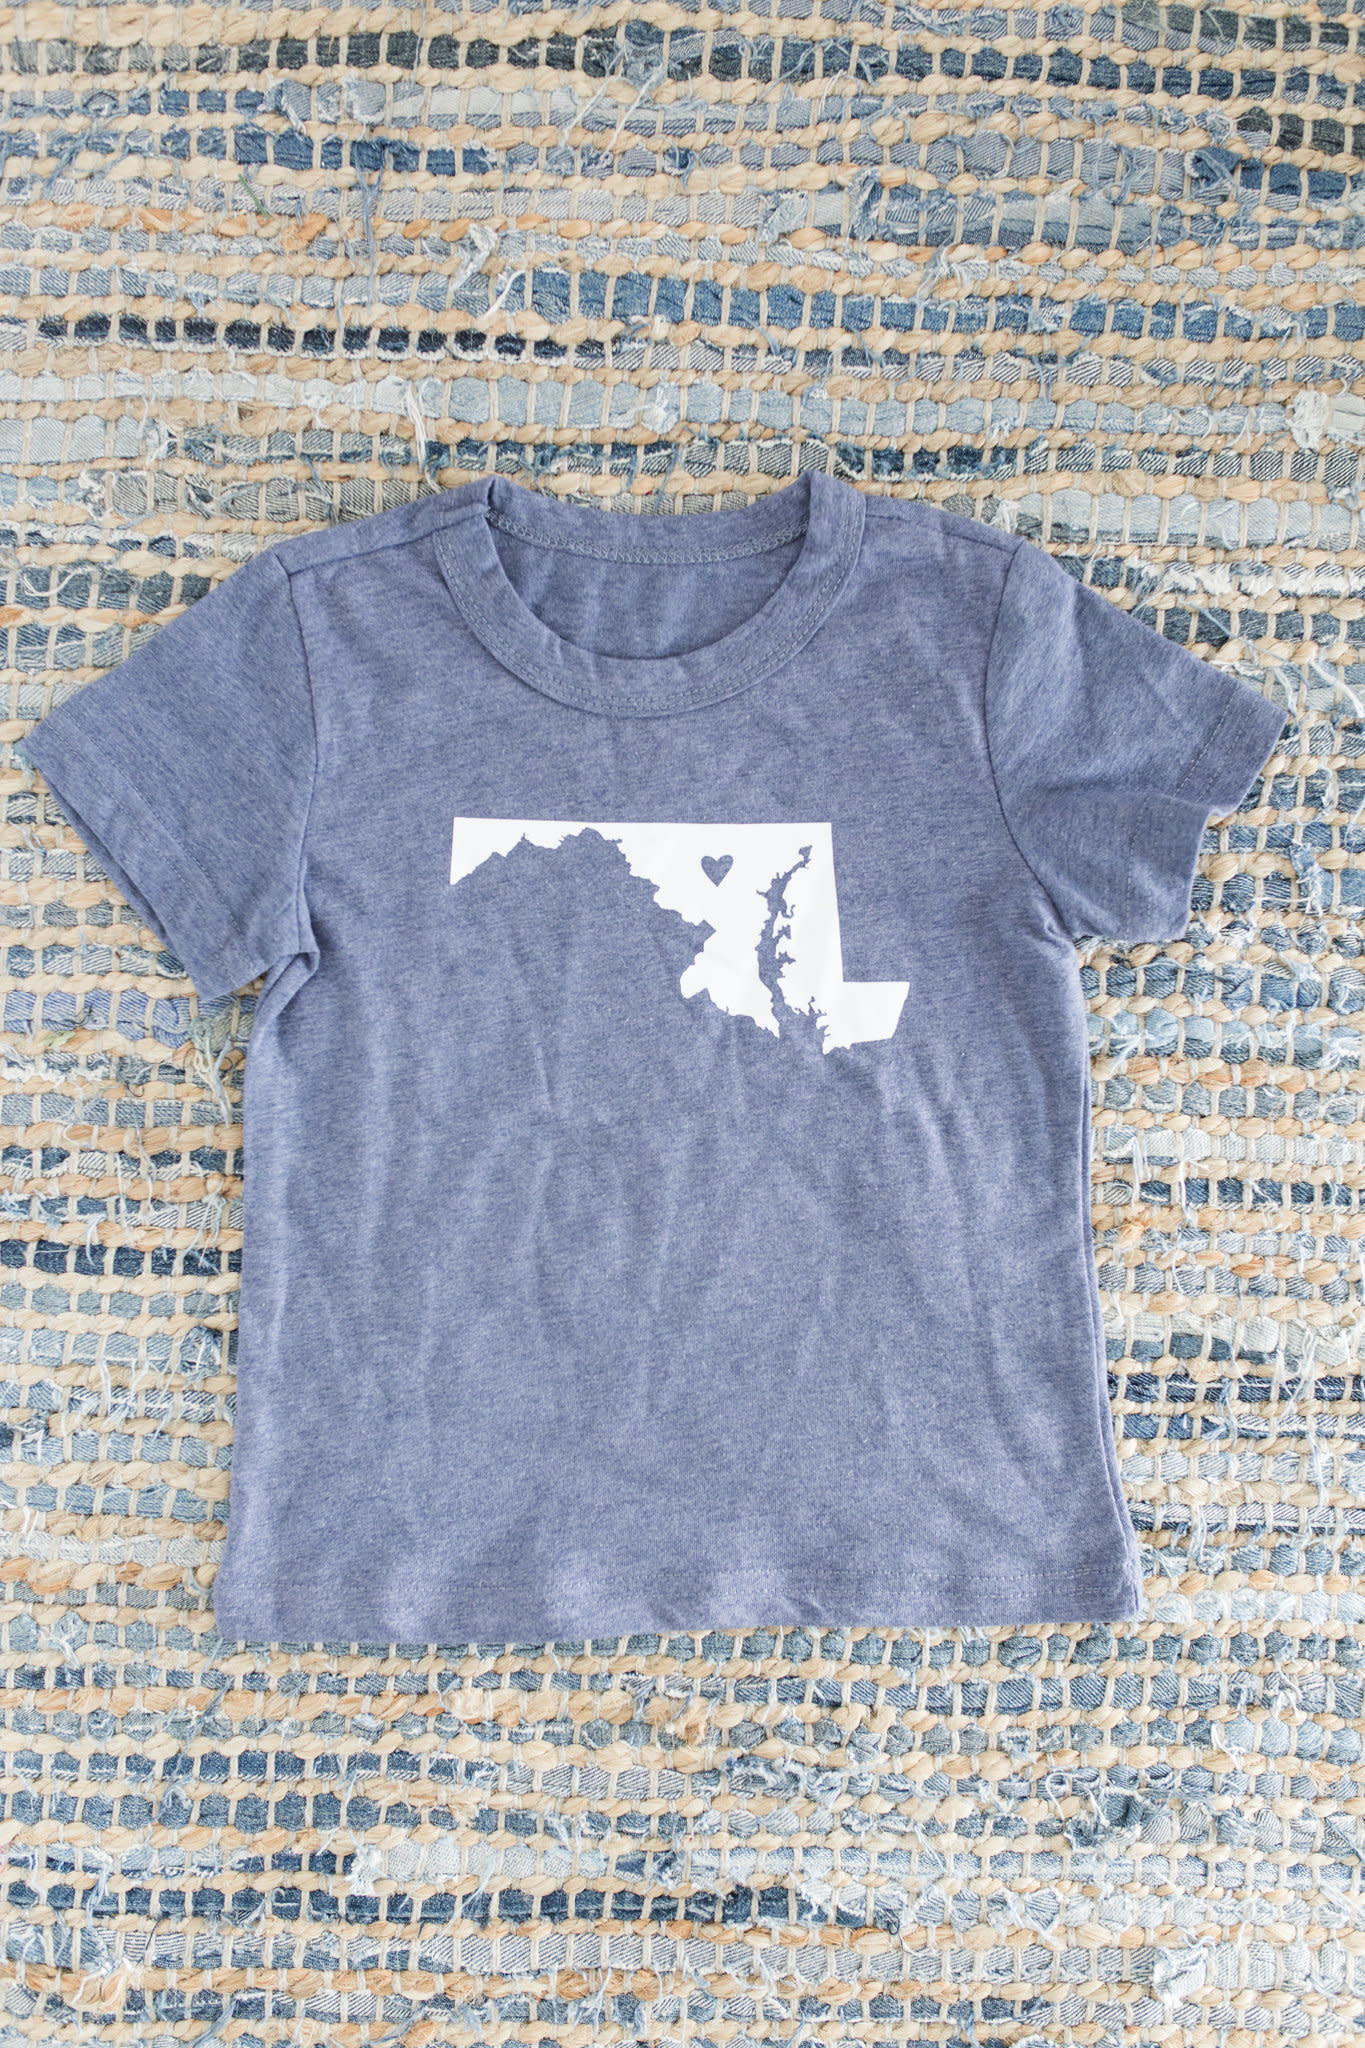 About Face Designs Maryland Toddler Tee 2T